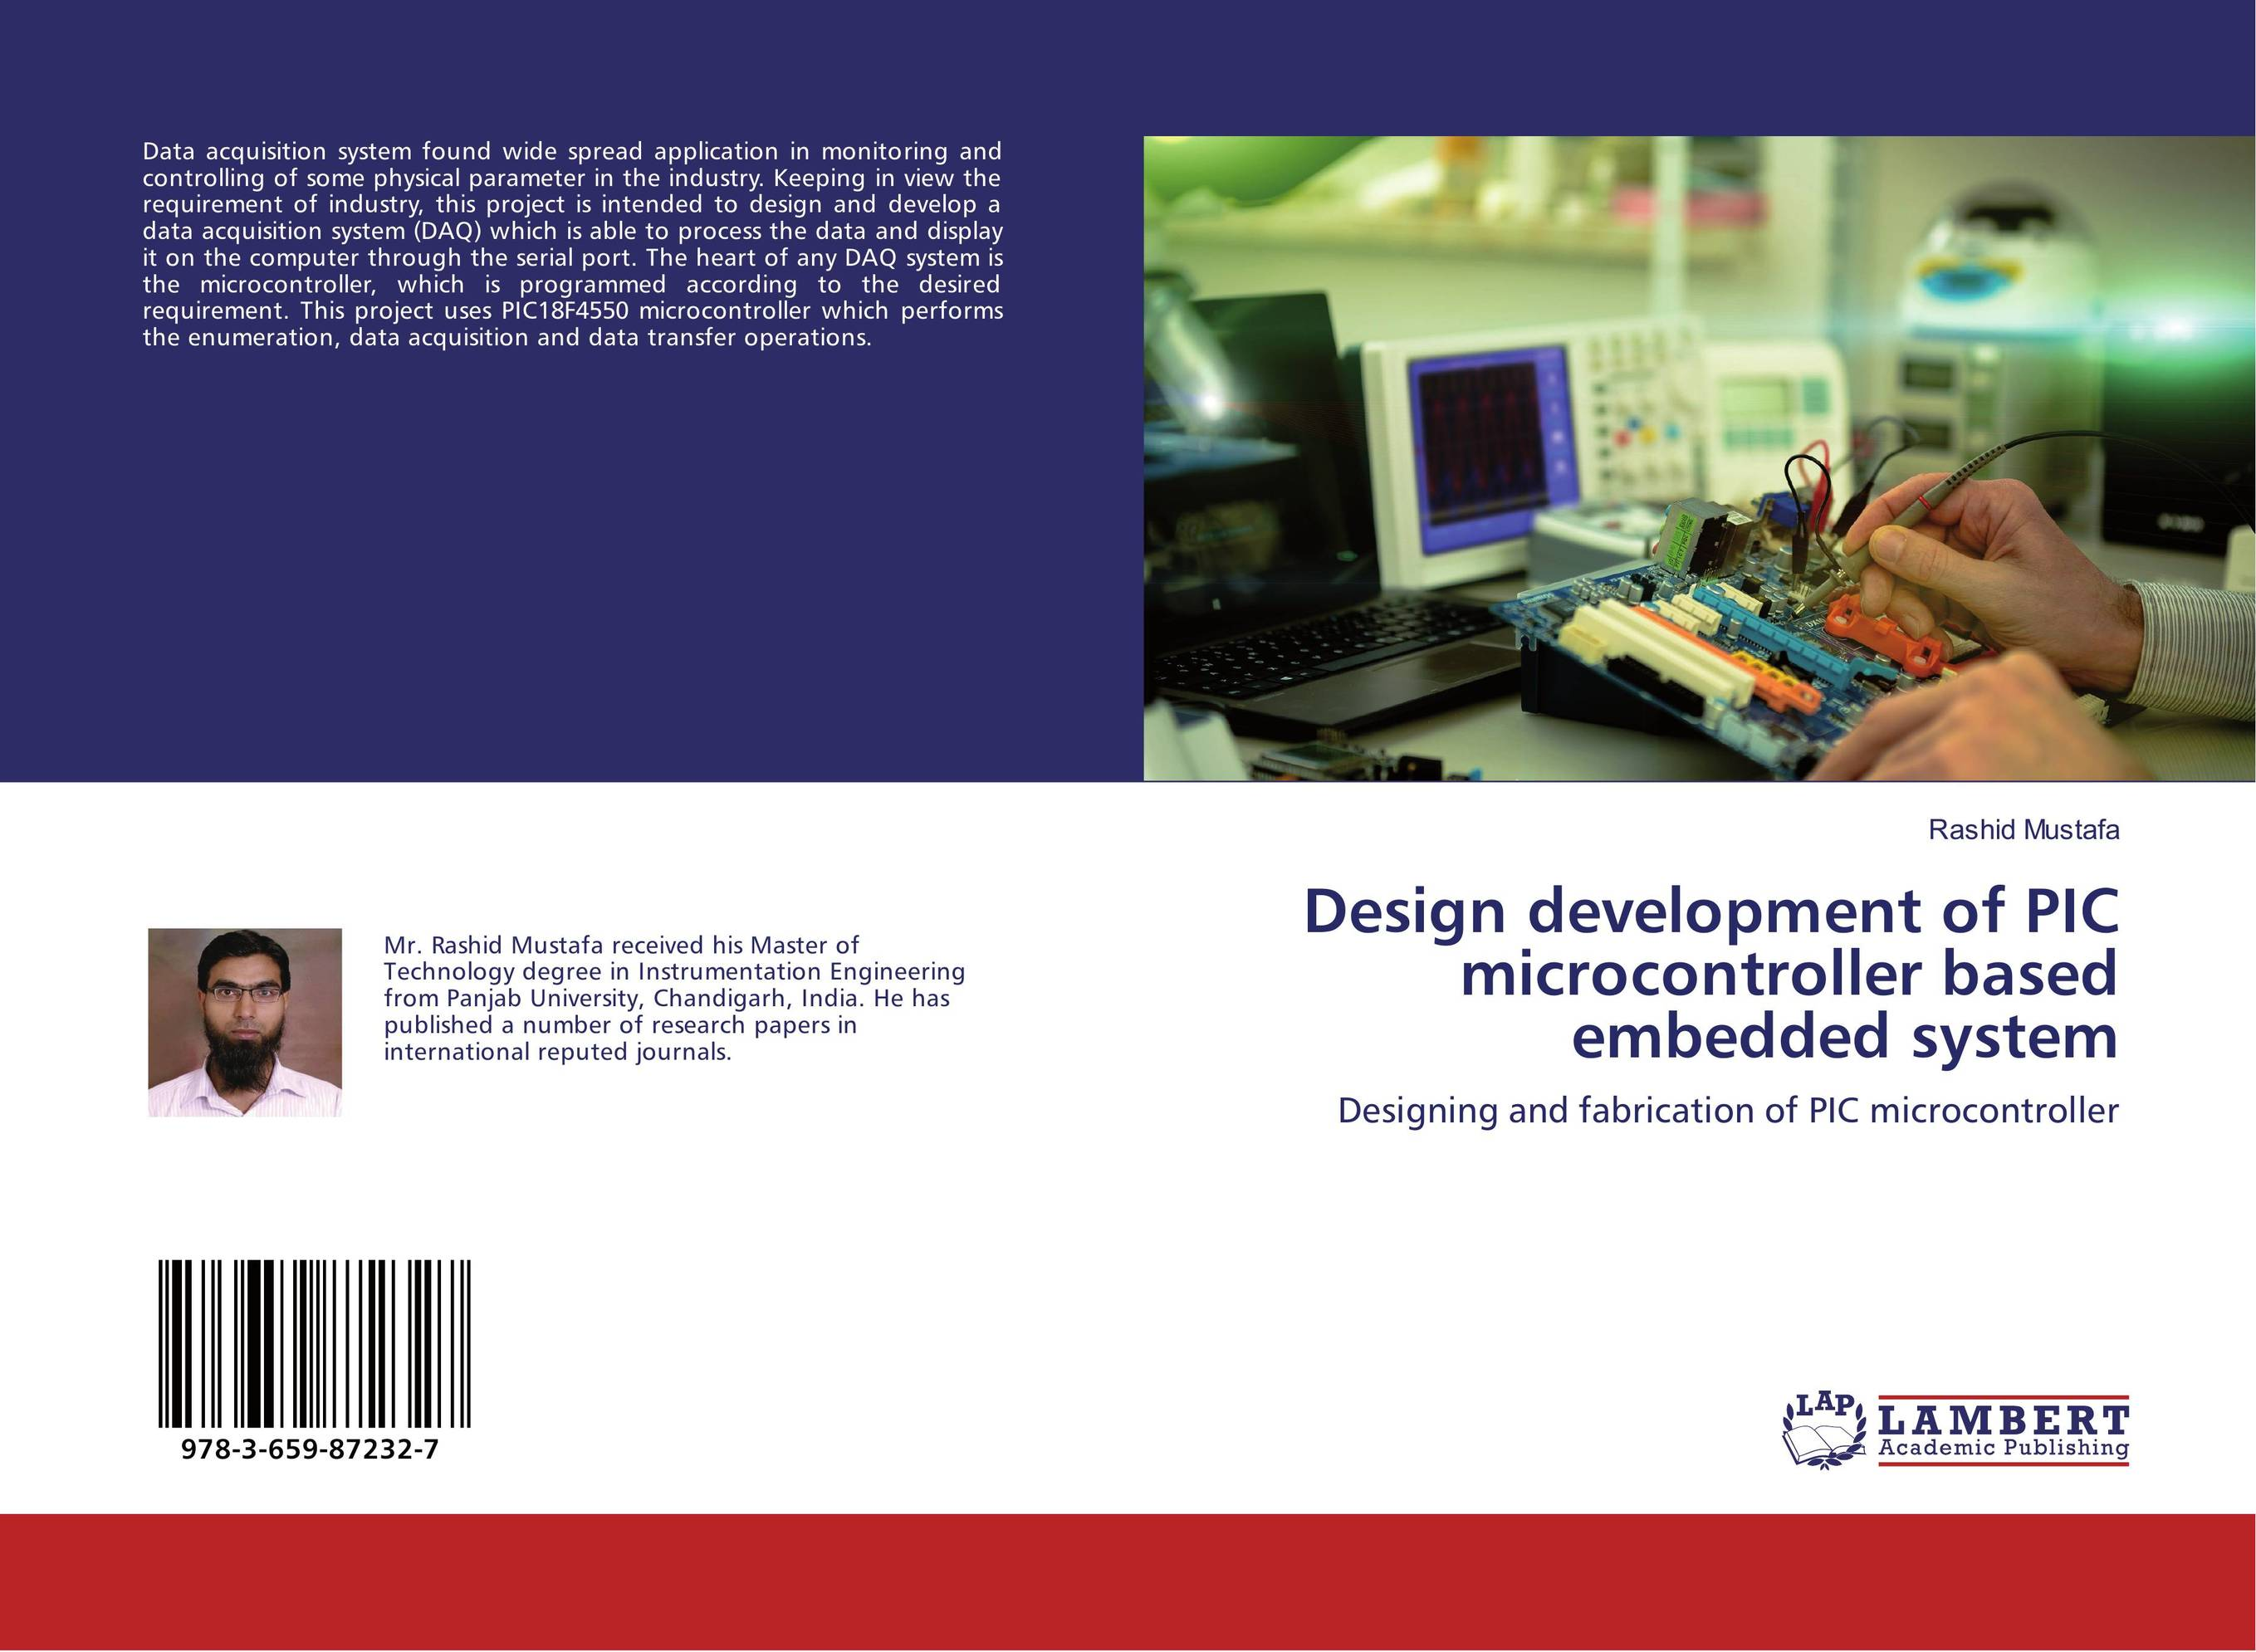 Design development of PIC microcontroller based embedded system